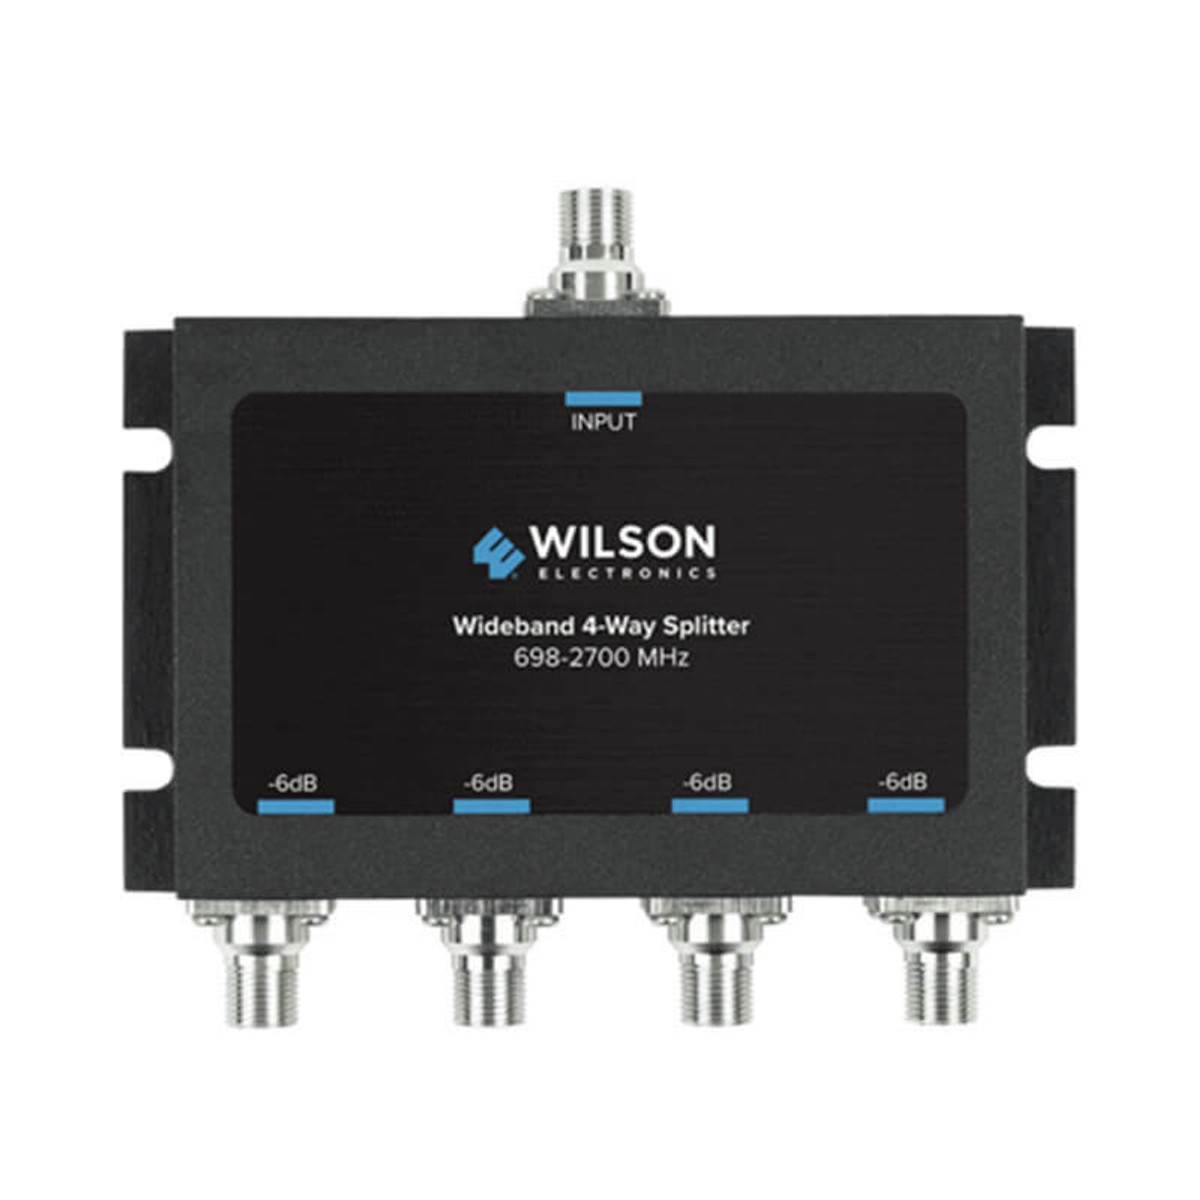 Wilson Electronics Wilson Electronics -6db 4-way Splitter for 698-2700 MHz 75ohm or 850036